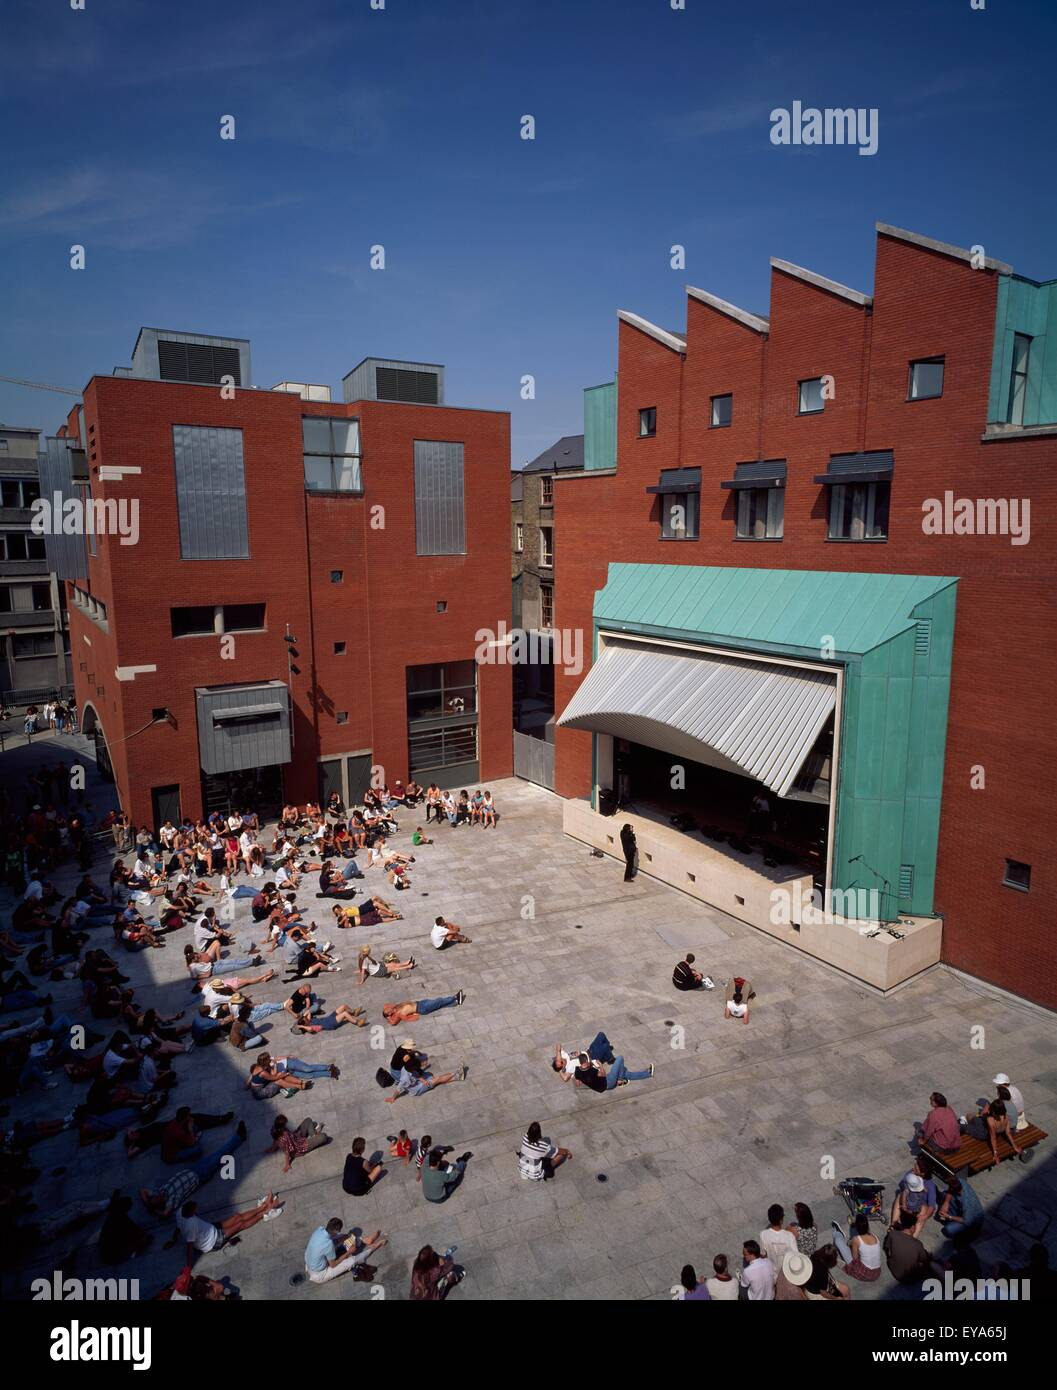 National Photographic Archive, Meeting House Square, Temple Bar, Dublin City, County Dublin, Ireland - Stock Image